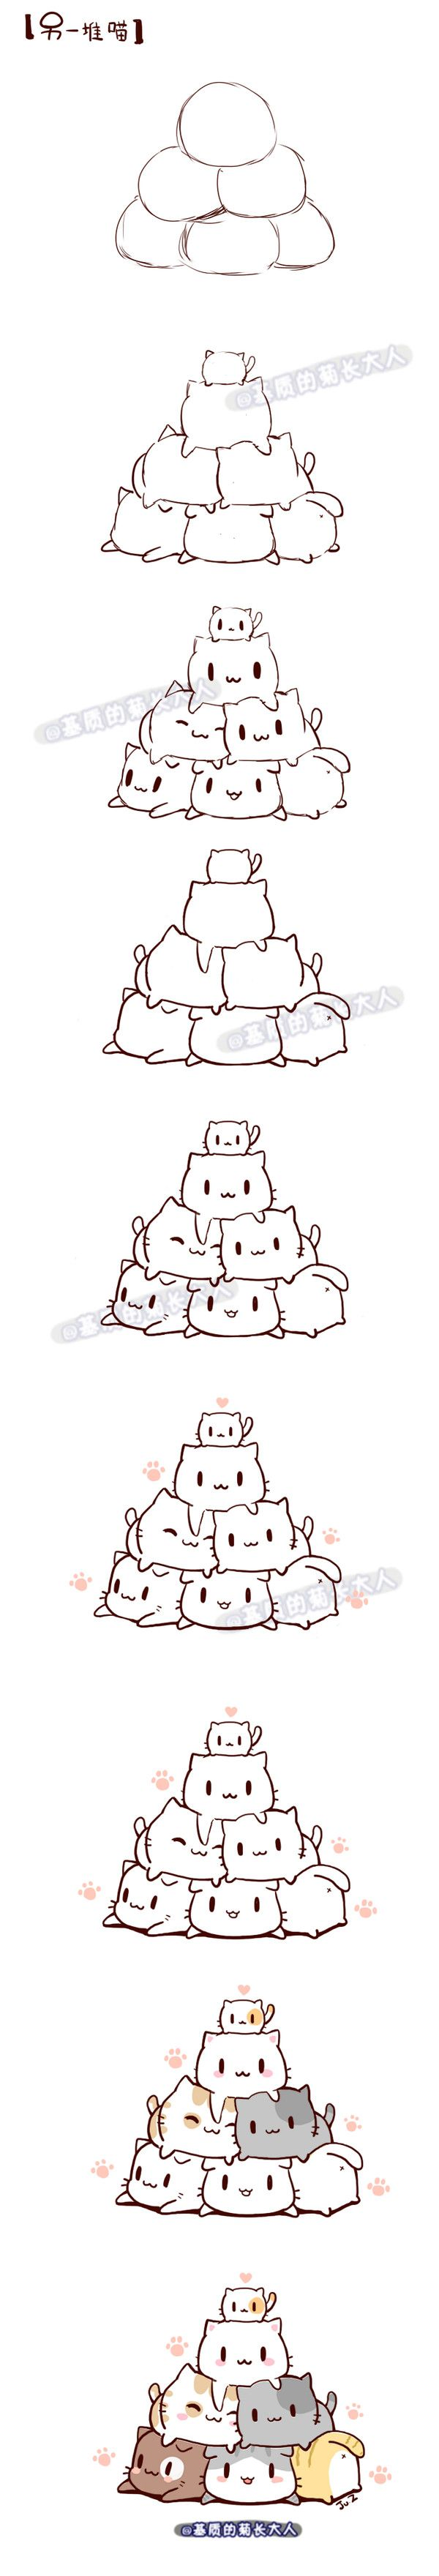 best 25 cute cat drawing ideas on pinterest kitty drawing